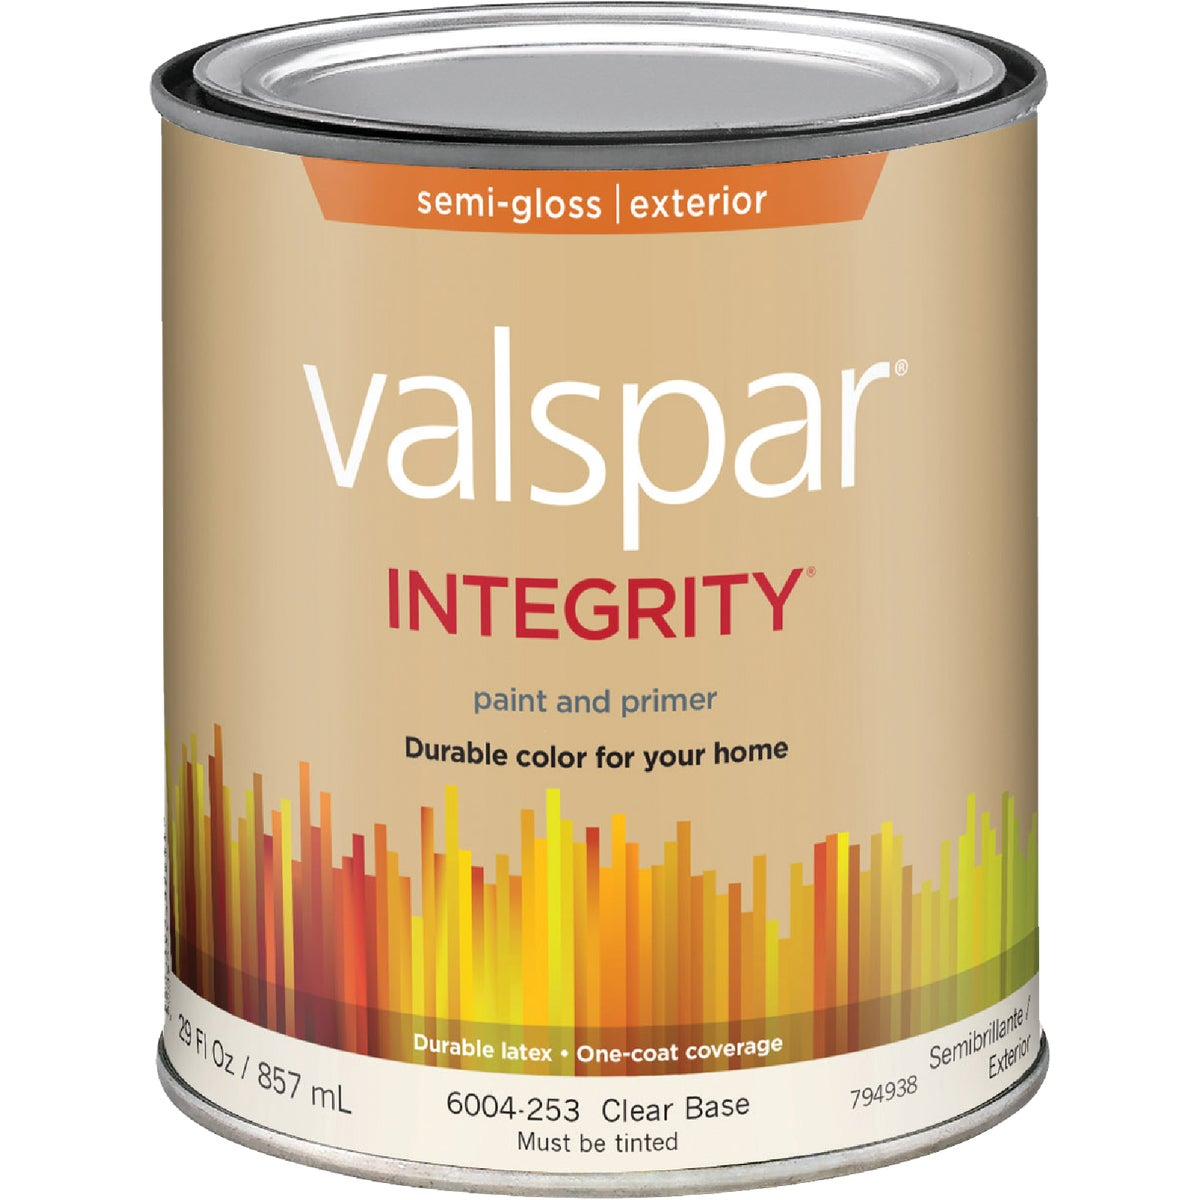 EXT S/G CLEAR BS PAINT - 004.6004253.005 by Valspar Corp